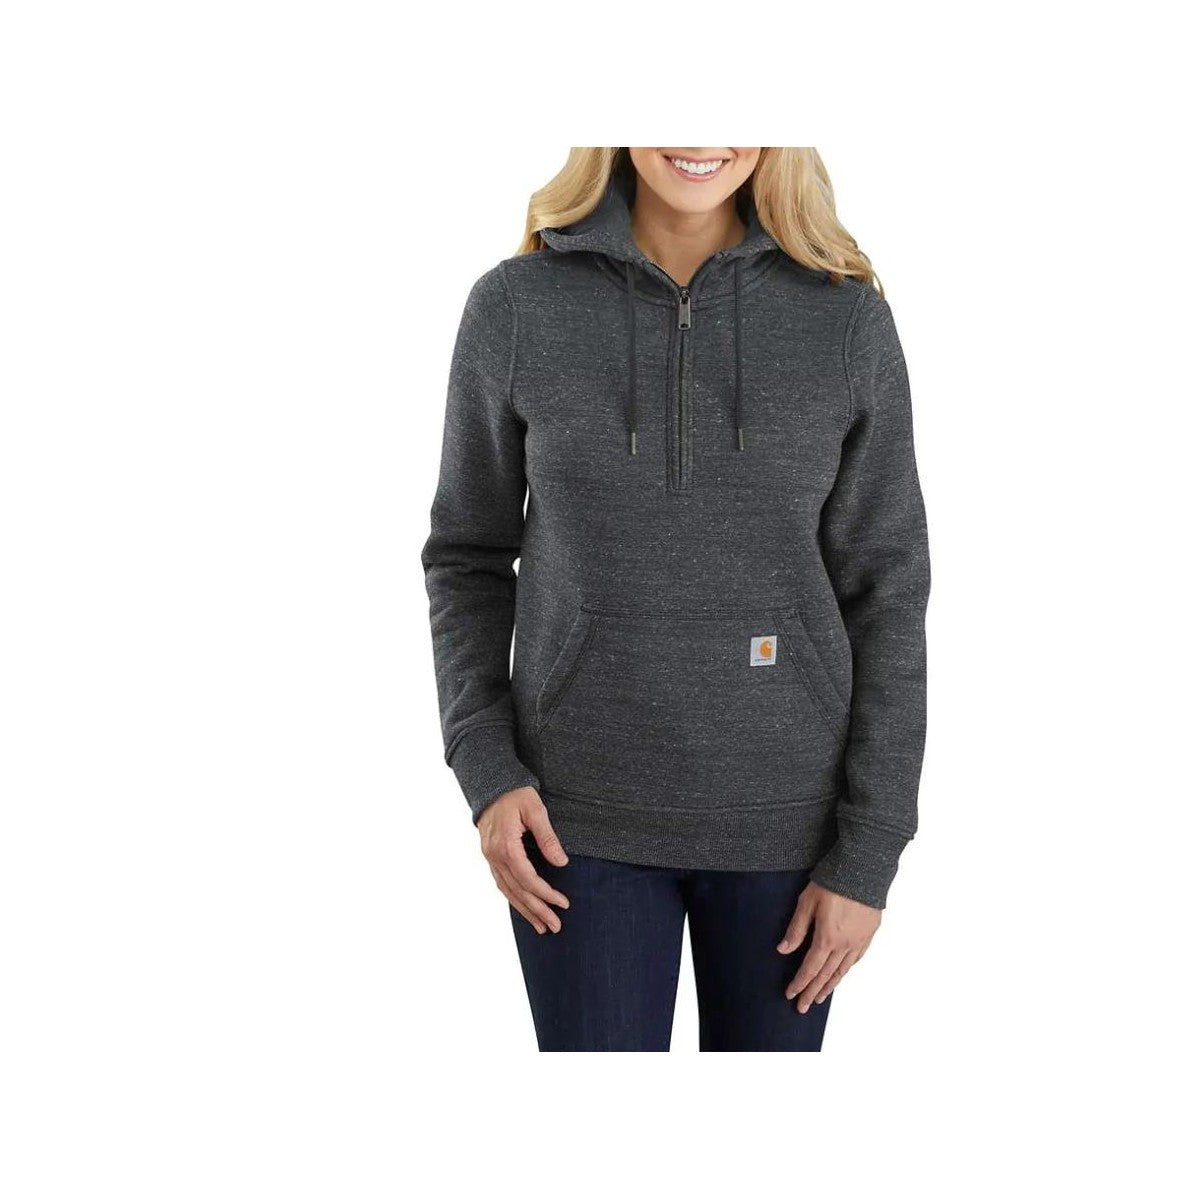 'Carhartt' Women's Clarksburg 1/2 Zip Sweatshirt - Black Heather